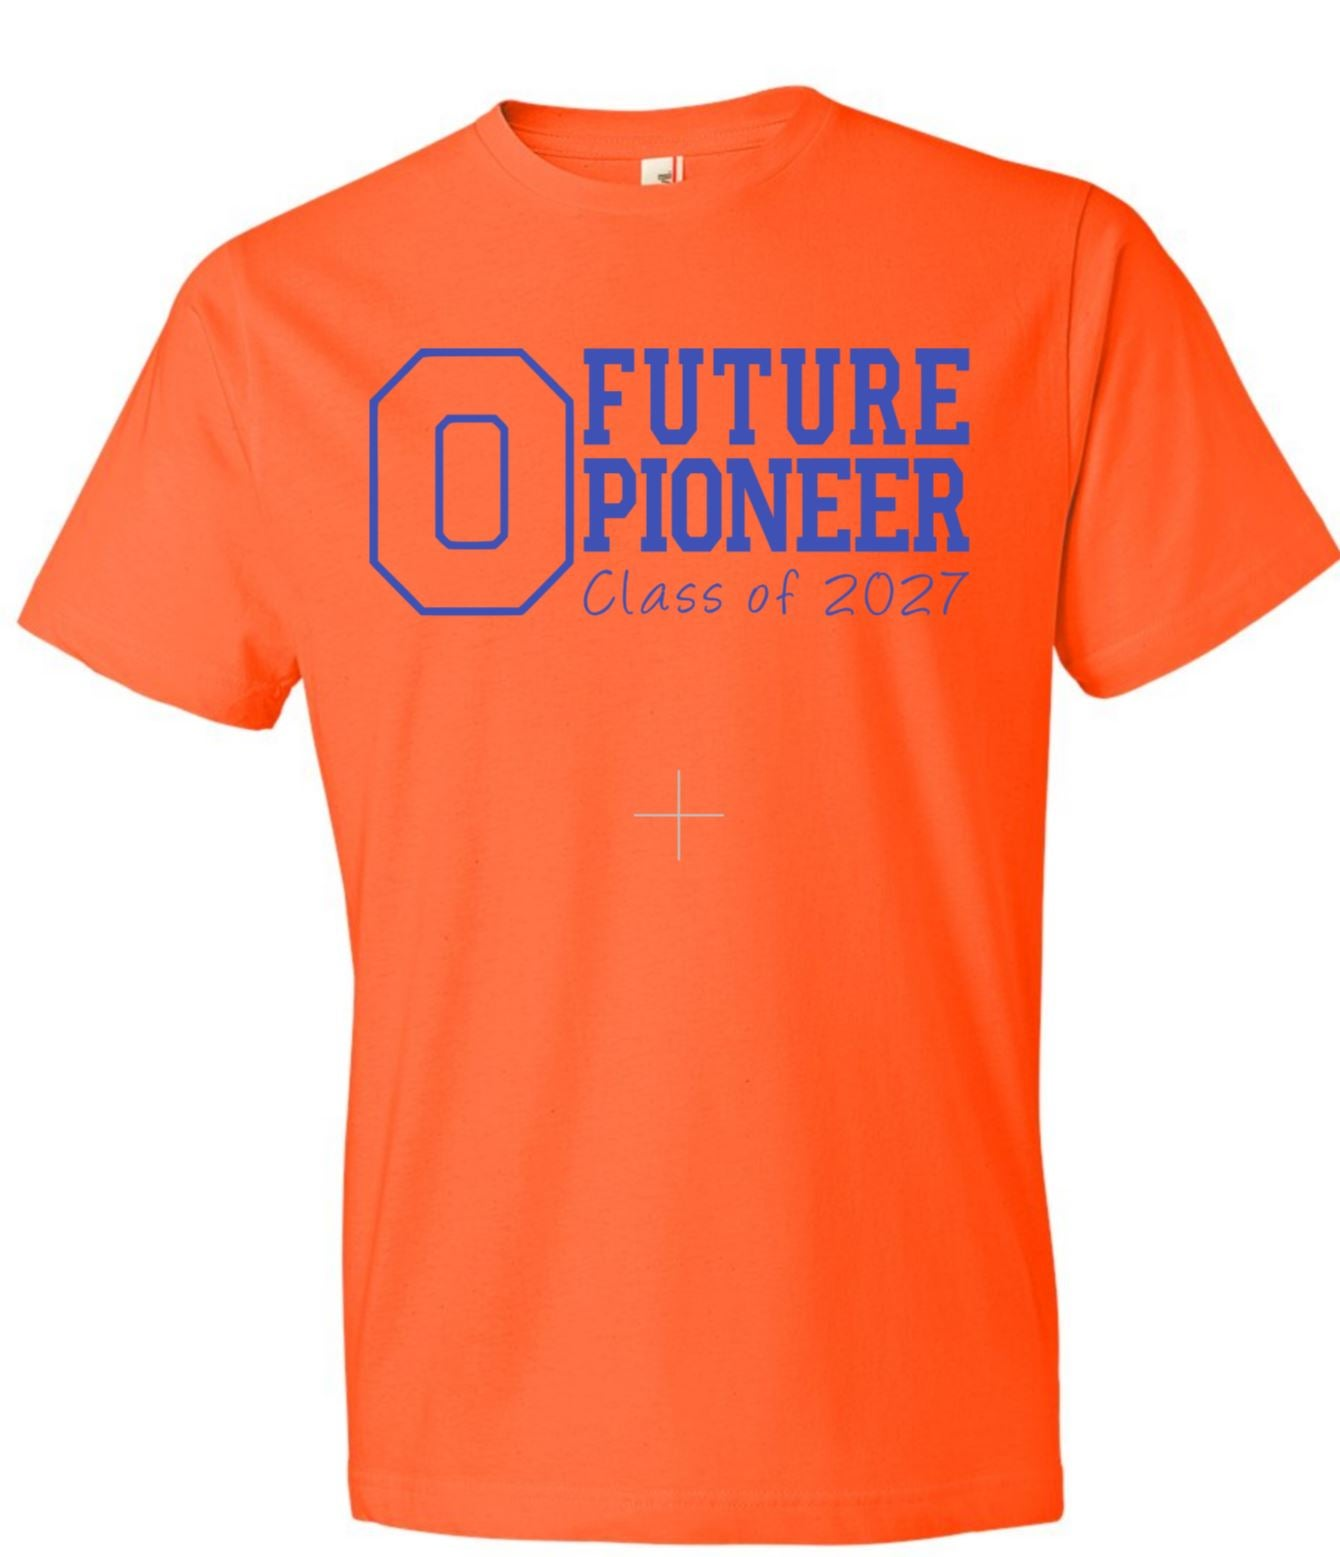 Image of Future Pioneer Class of 2027